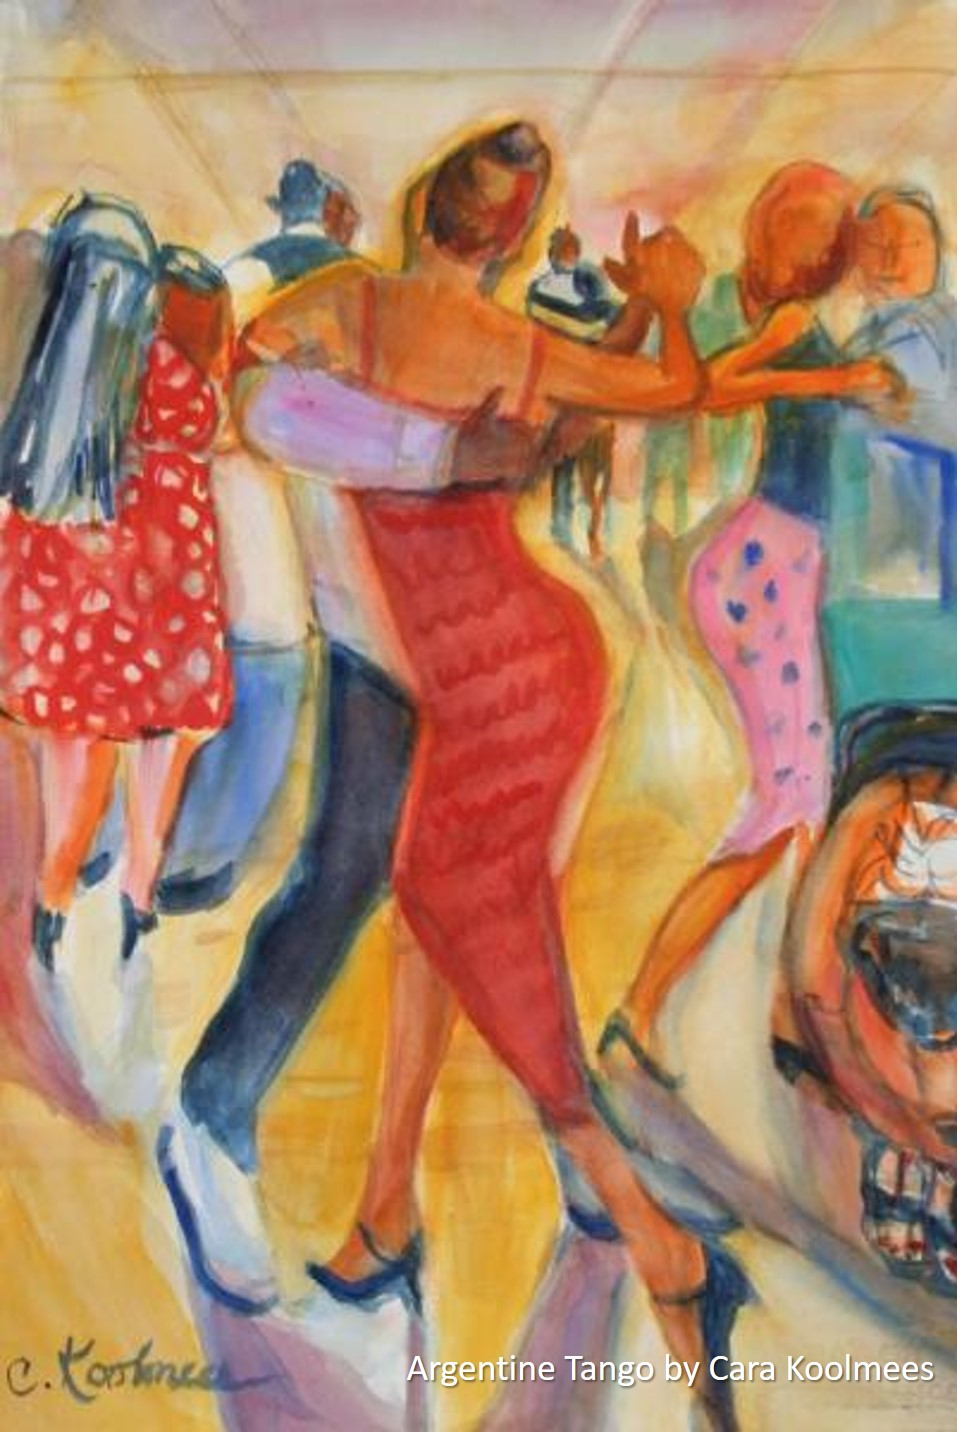 UWS_Argentine Tango by Cara Koolmees_with labels